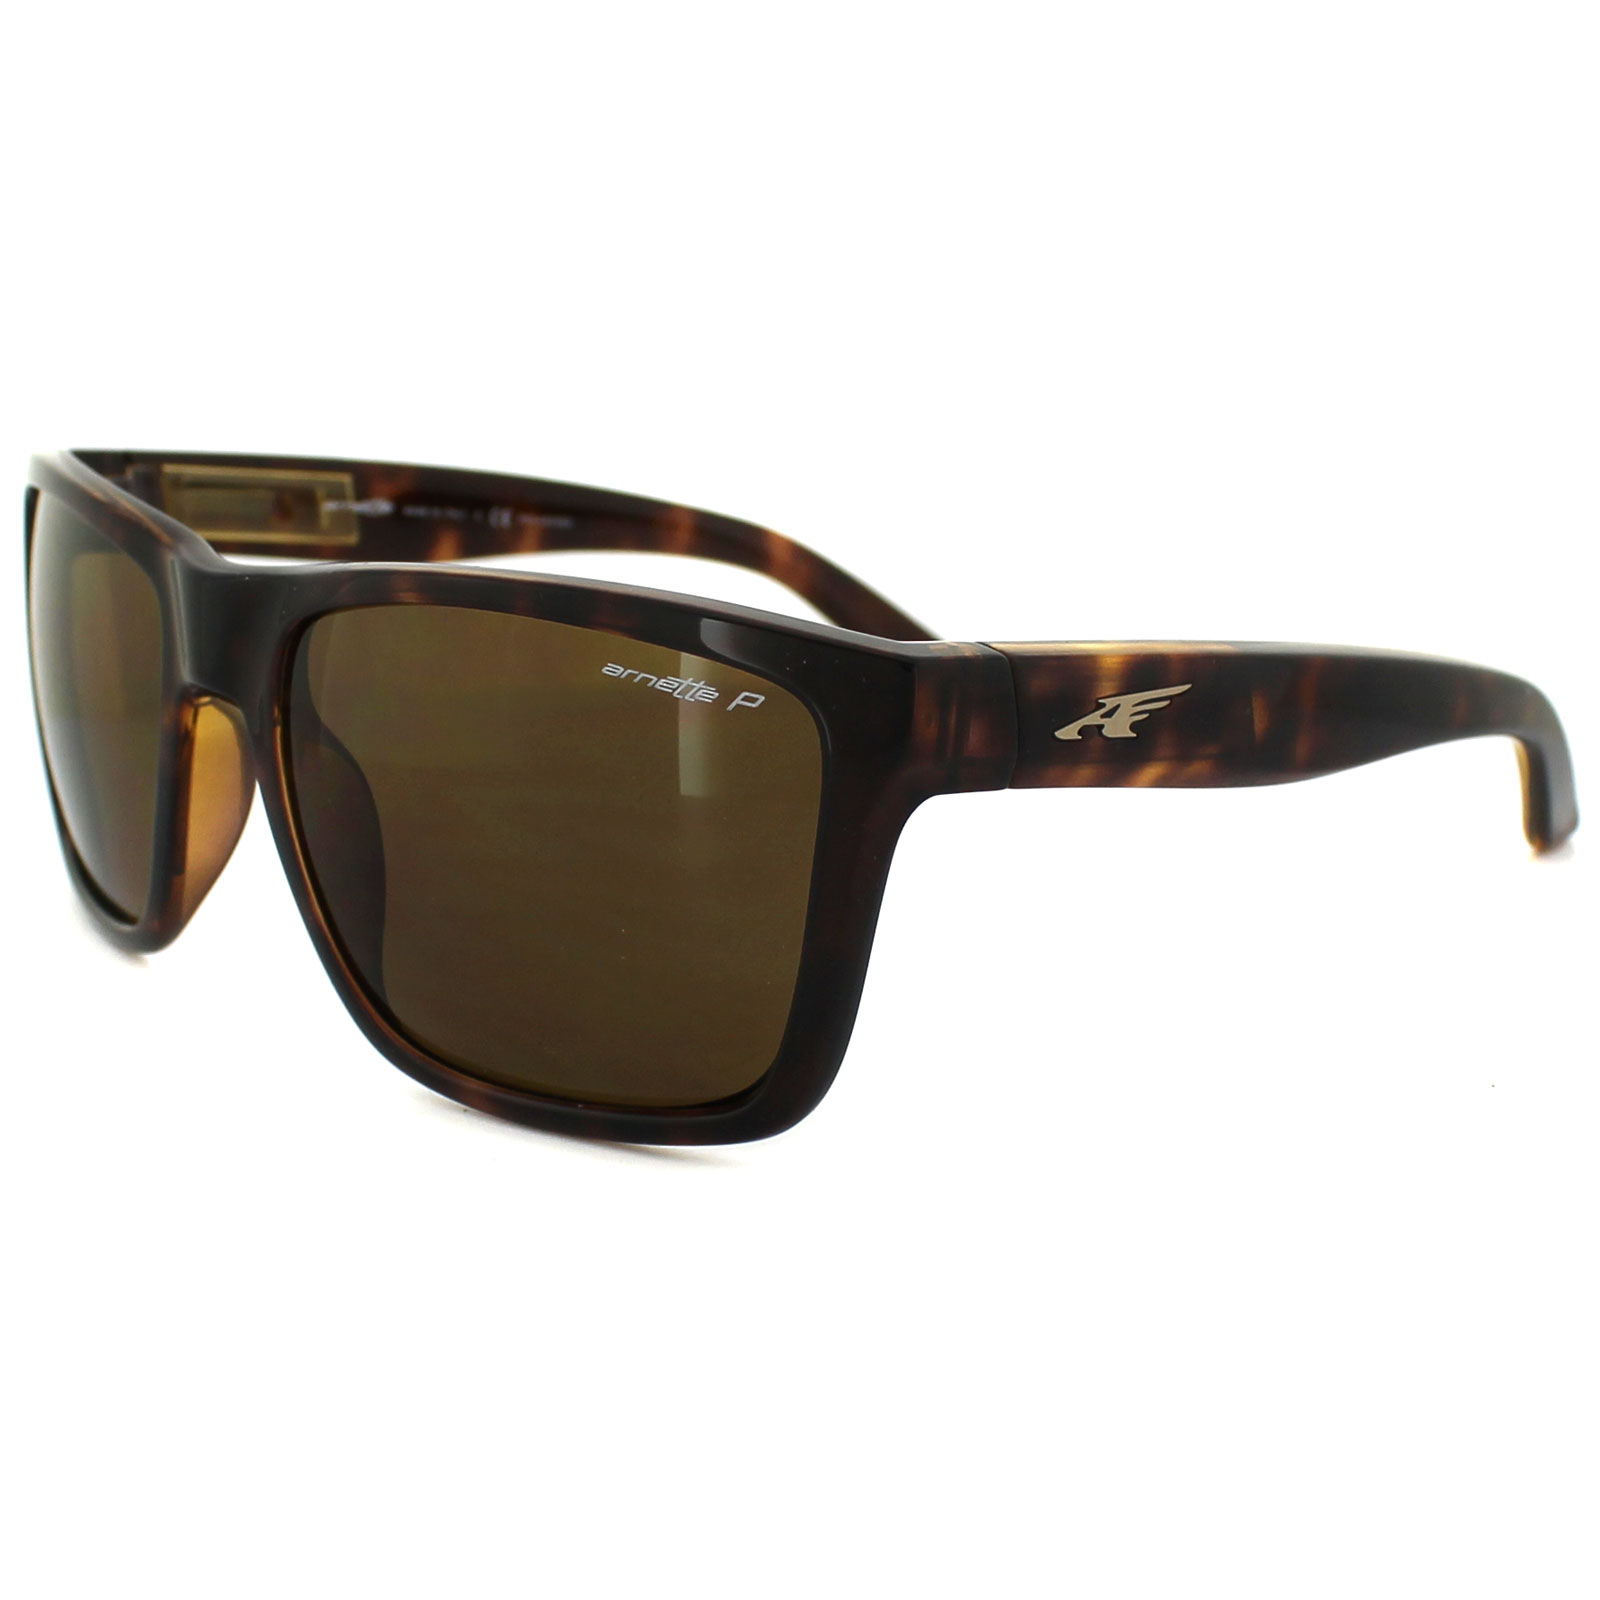 Arnette Sunglasses 4177 Witch Doctor 208783 Havana Brown ...